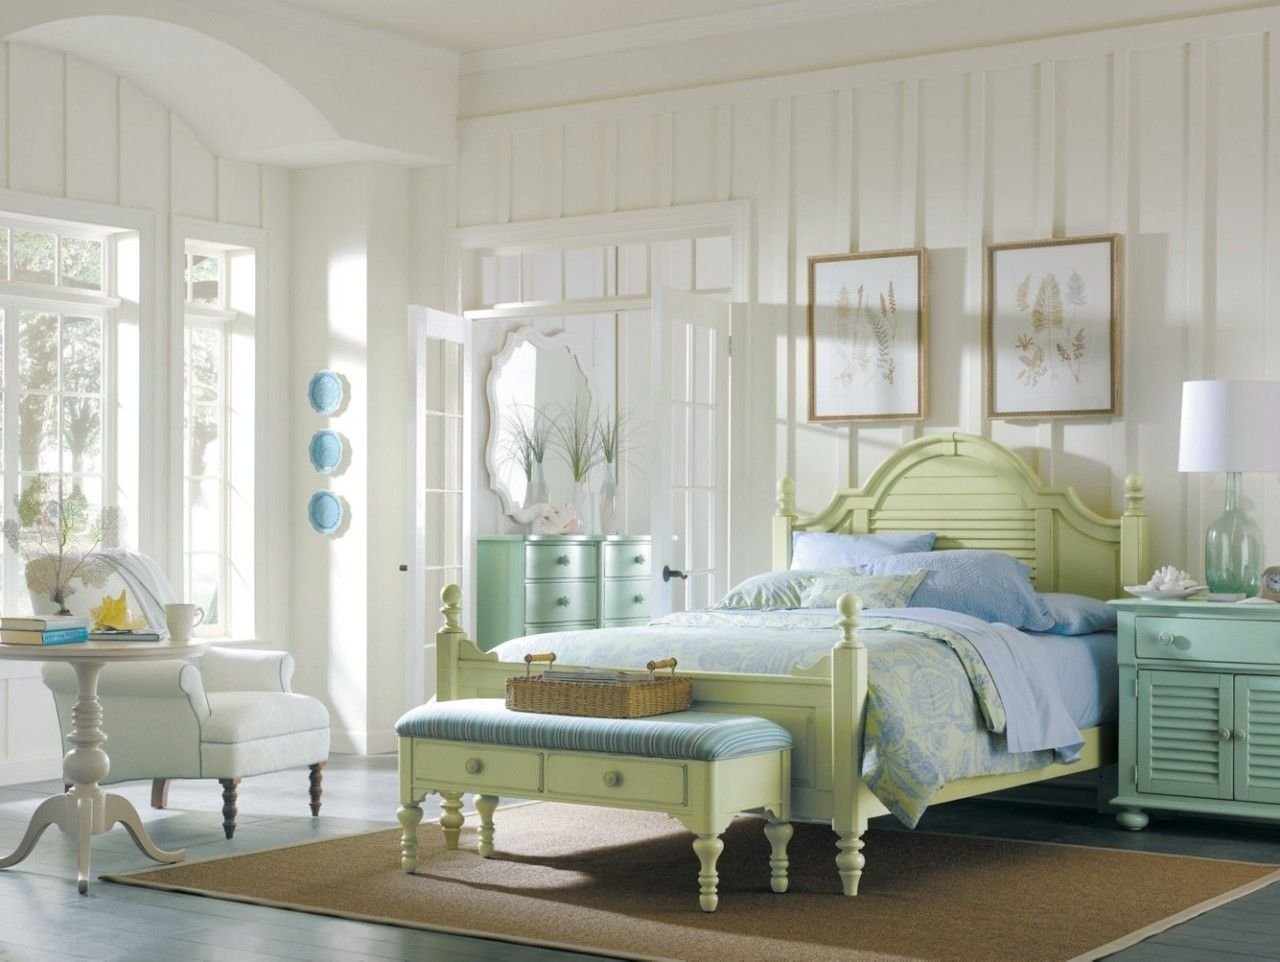 Lexington Seaside Retreat Furniture To Consider Getting And Using:  Mesmerizing Traditional Bedroom With White Walls